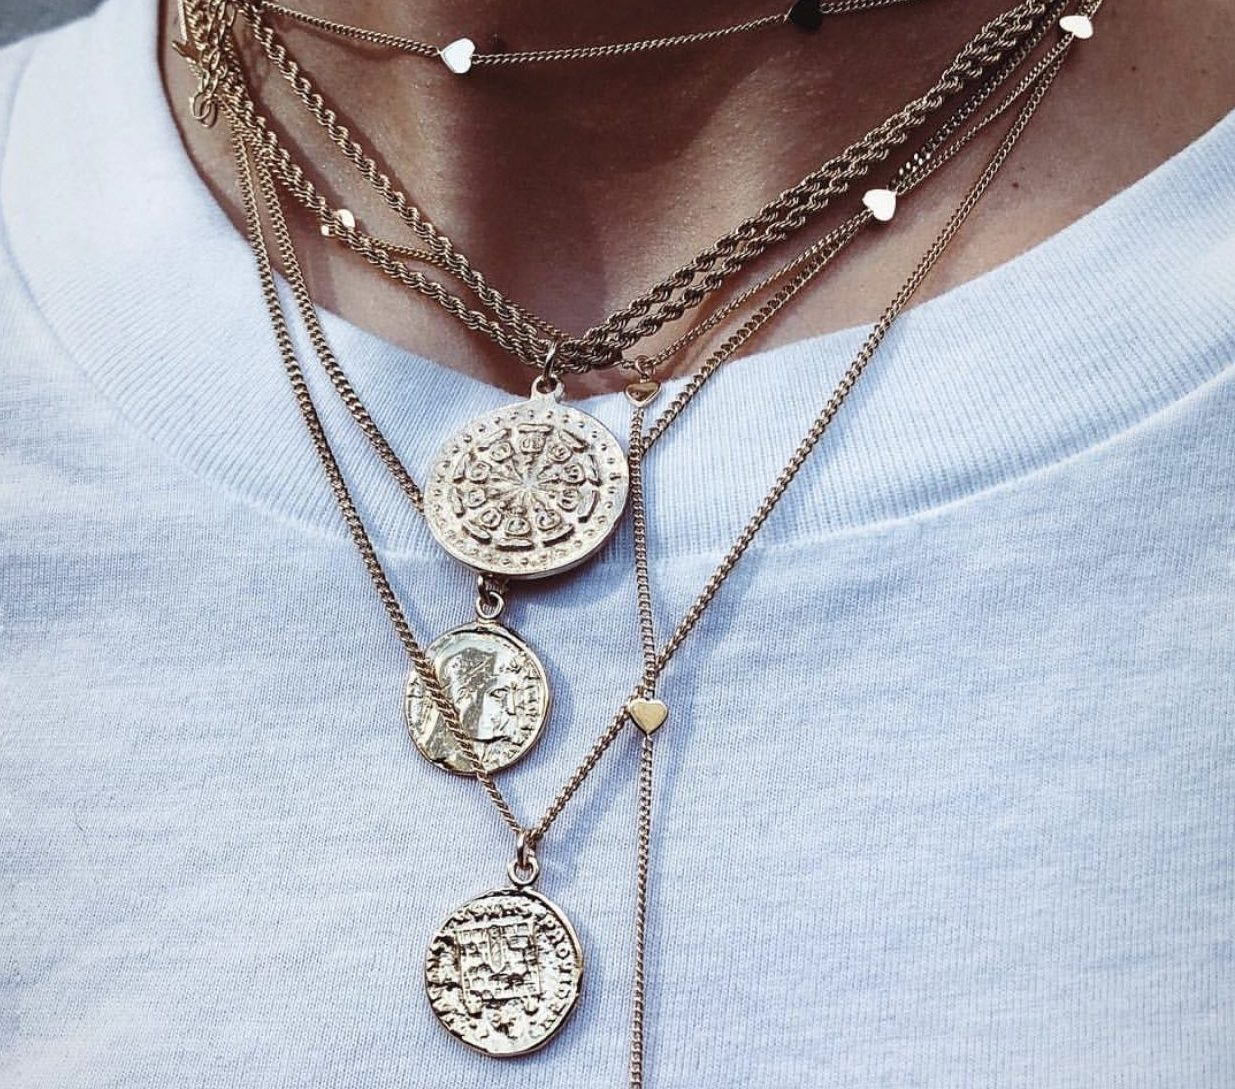 monete necklaces img coin shop gabbana necklace watches dolce jewelry brands brass roman pendants gold vice fashion medium